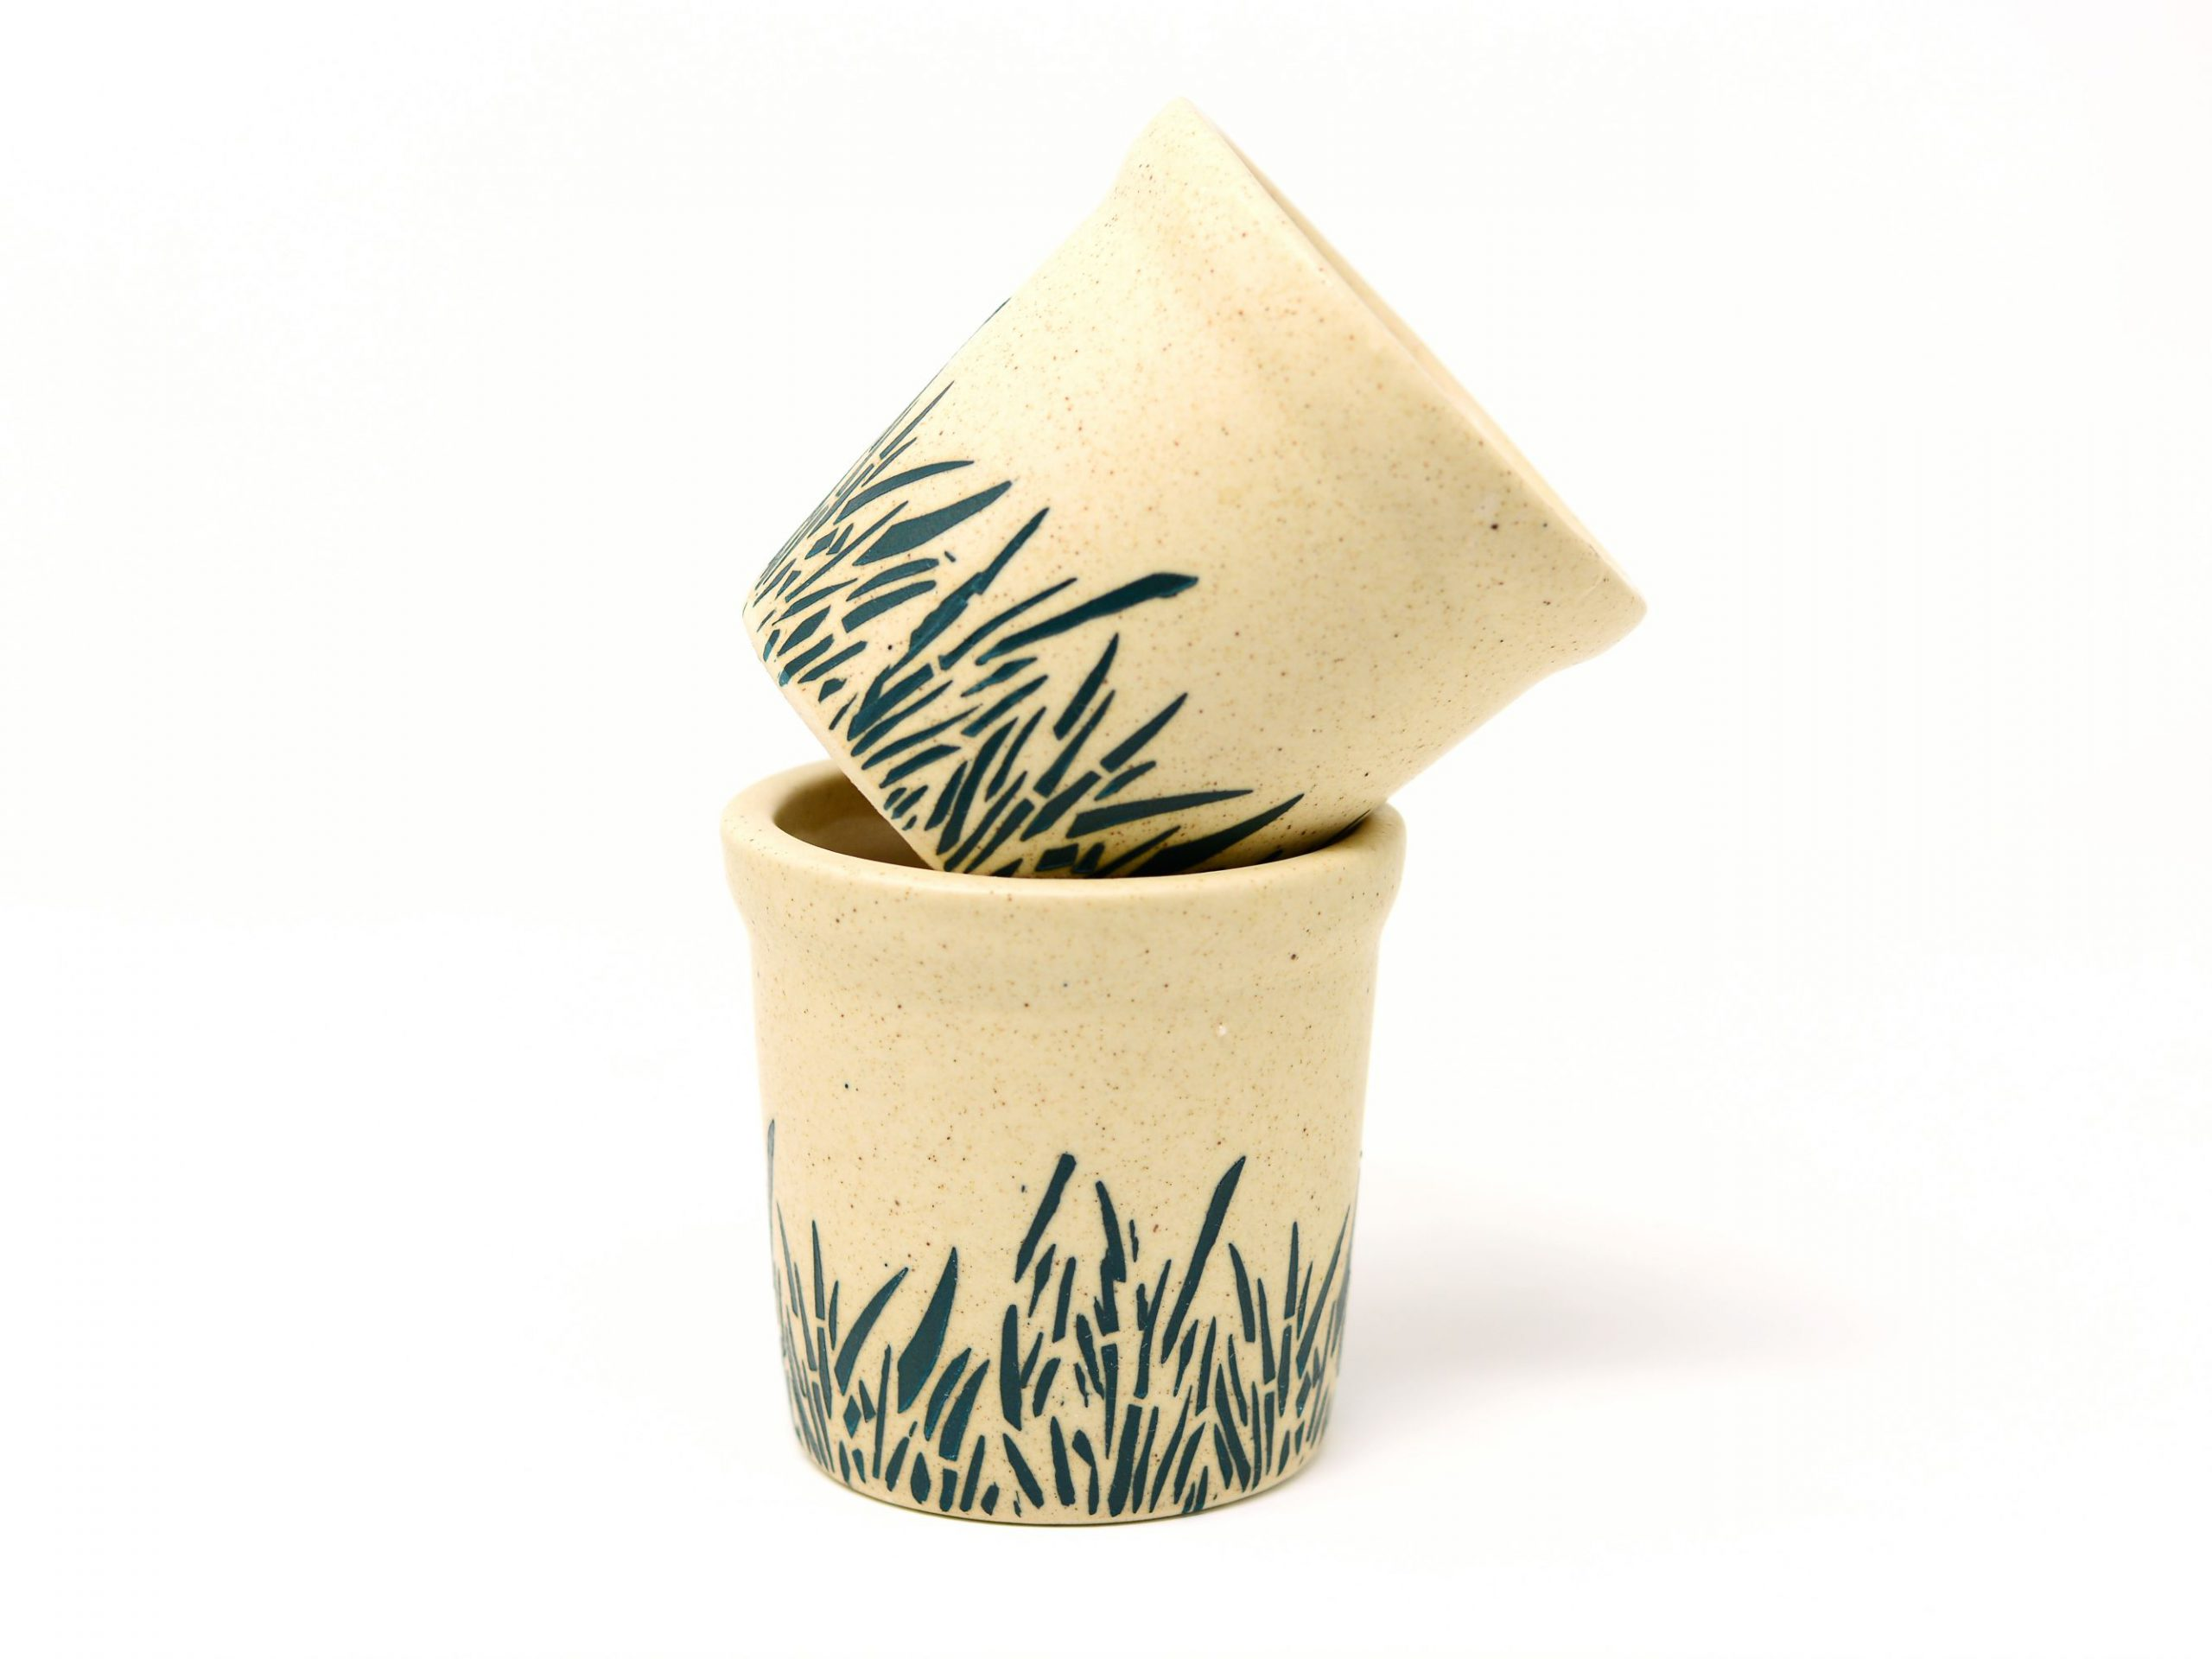 Decorative Ceramic Pot Planter - Grass Textured (Set of 2)